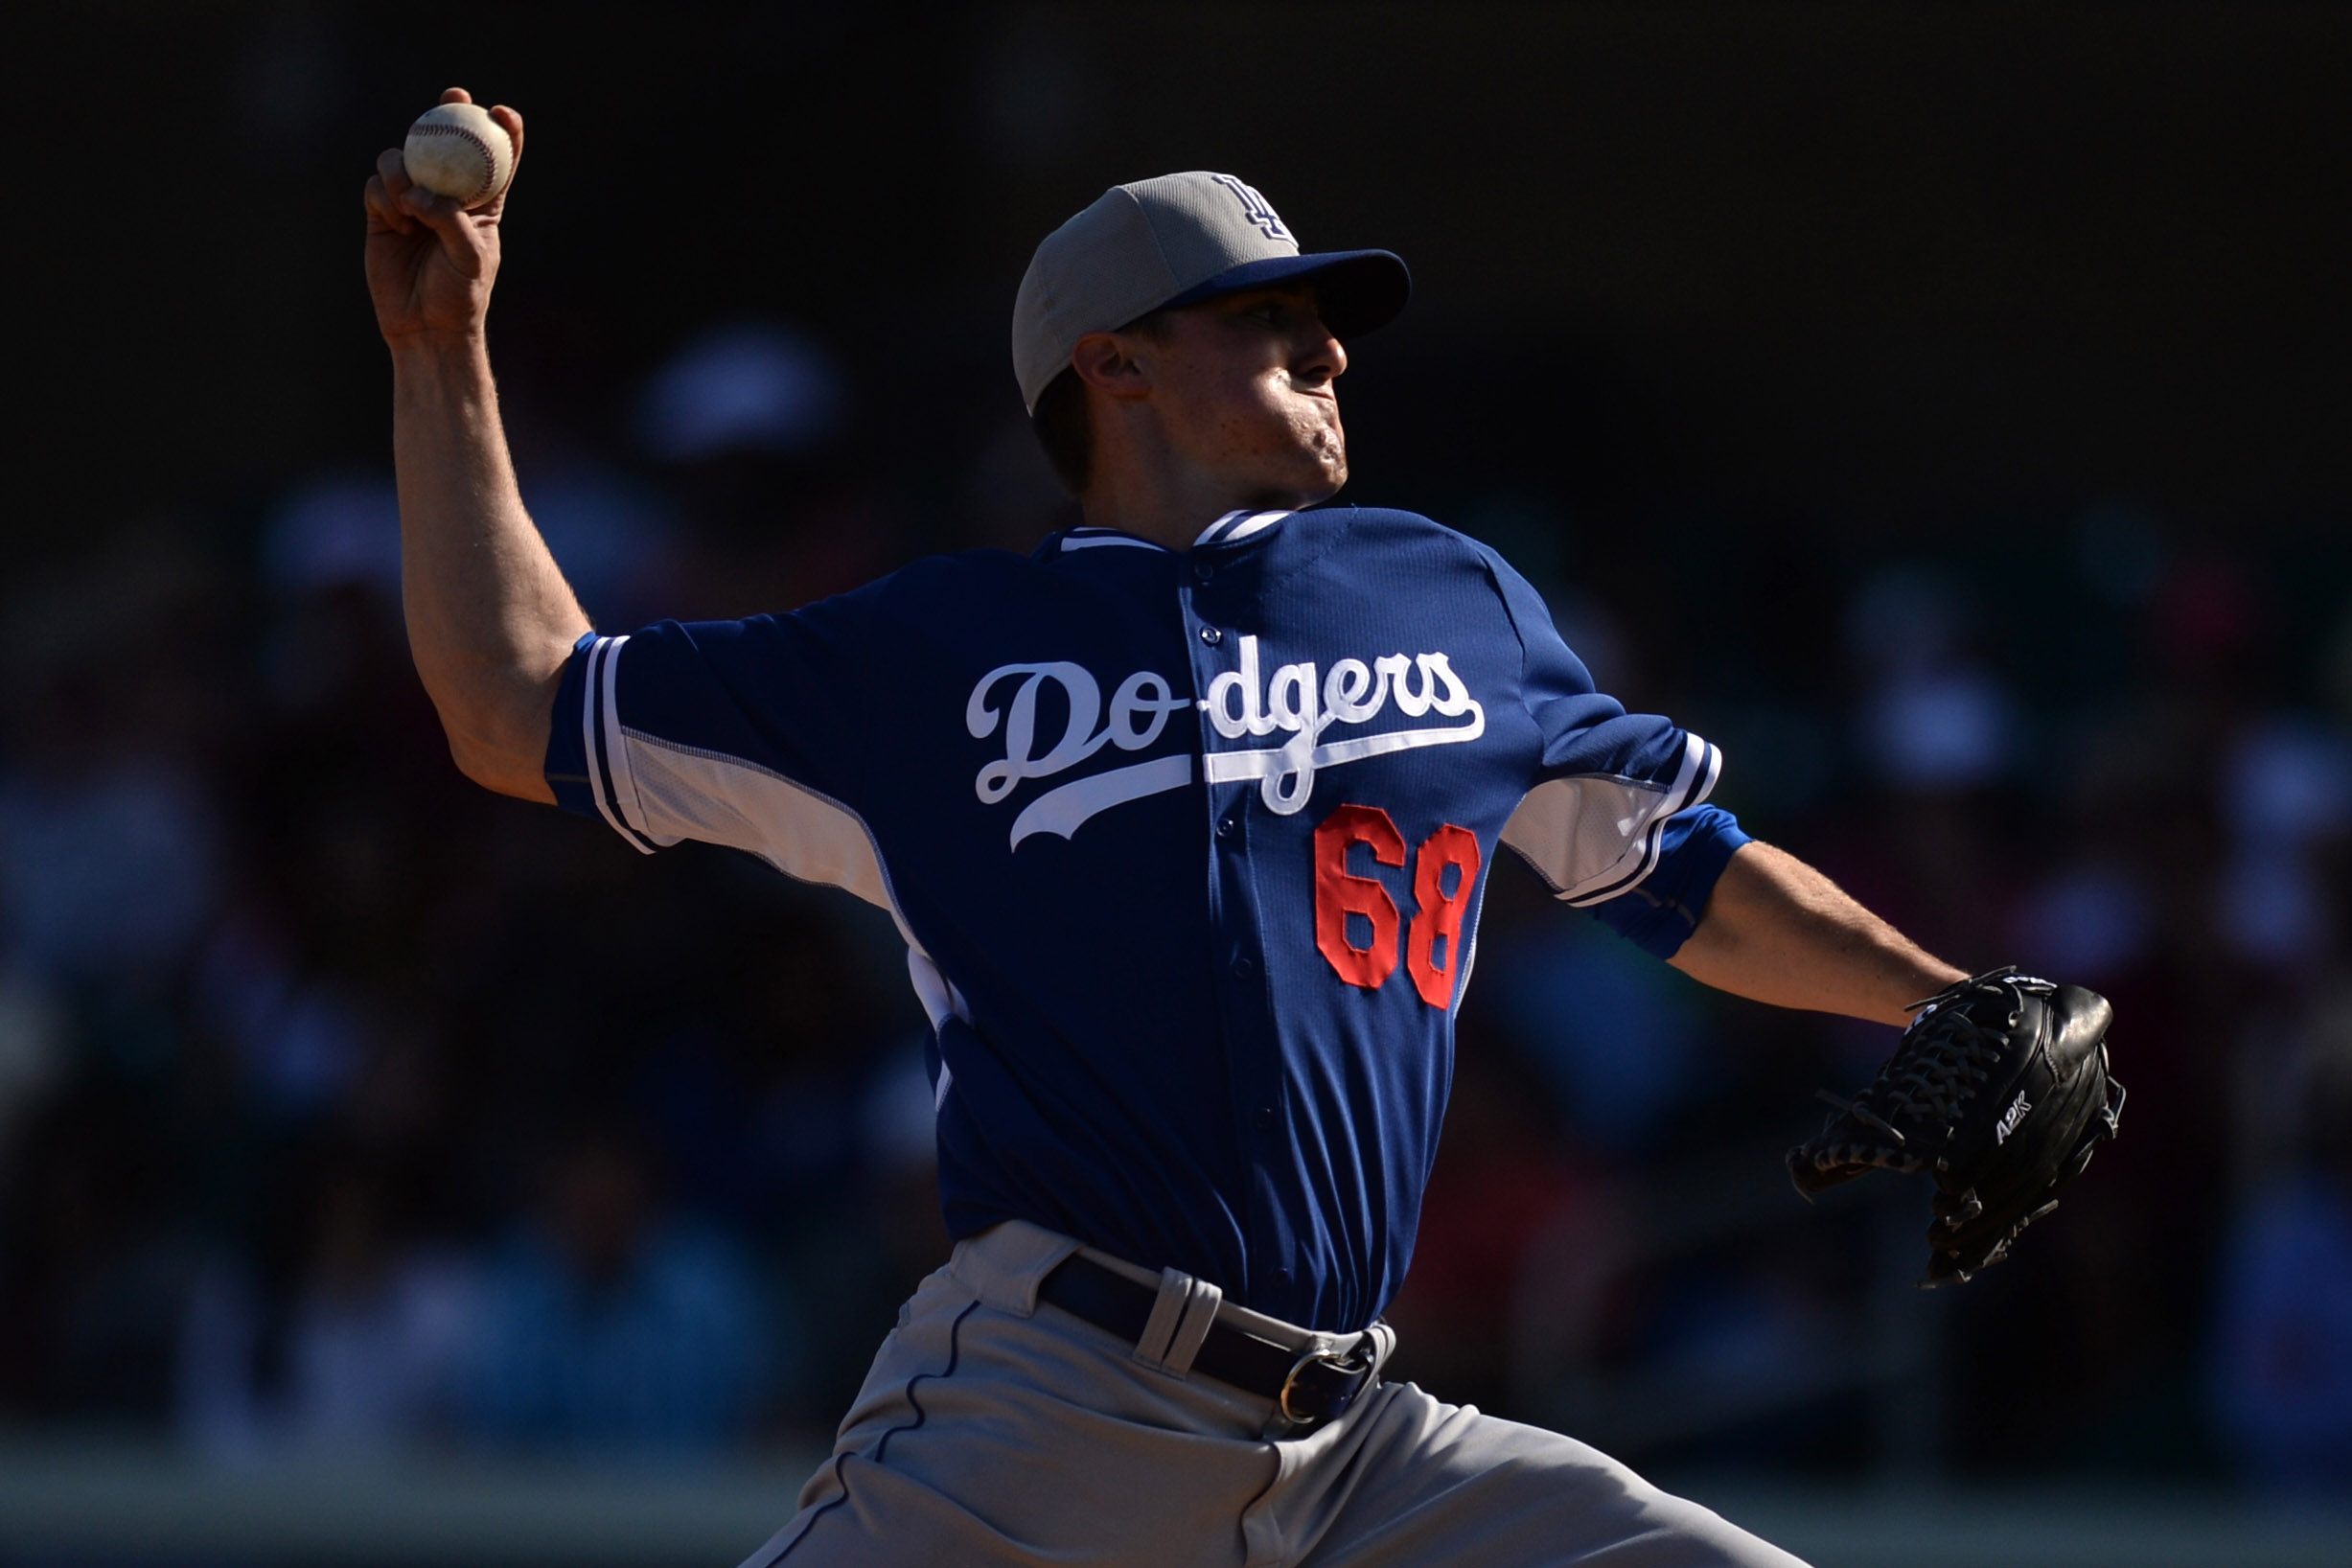 Ross Stripling was added to the Dodgers' 40-man roster on Friday.